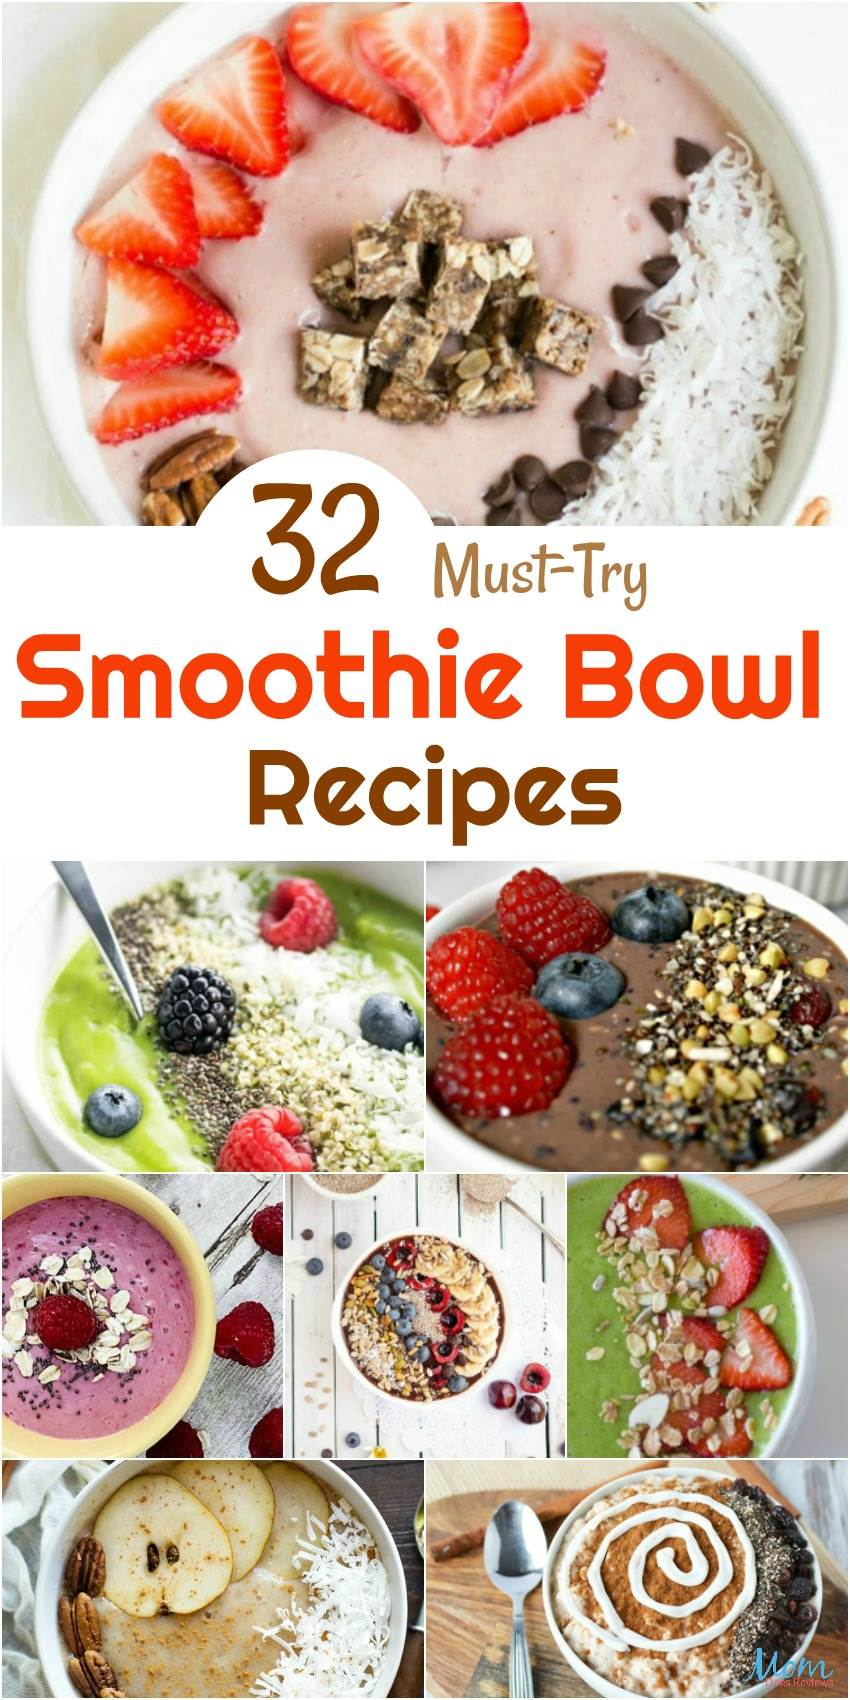 32 Must-Try Smoothie Bowl Recipes You Will Love #recipes #smoothies #smoothiebowls #breakfast #foodie